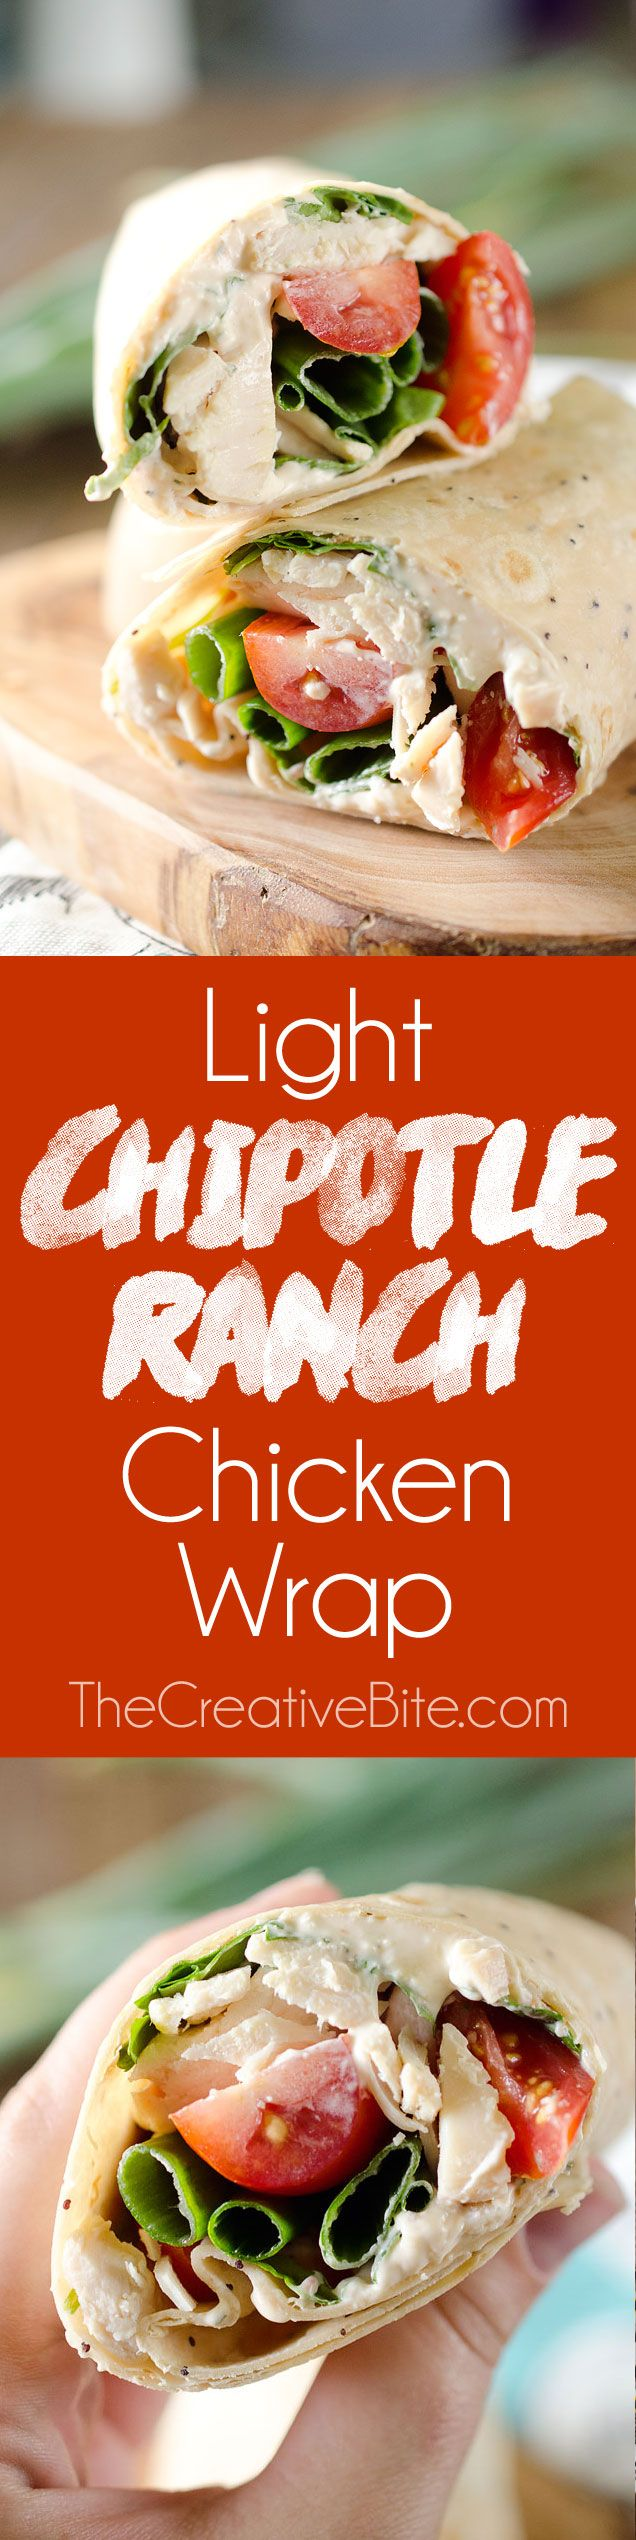 Light Chipotle Ranch Chicken Wrap is an easy wrap with rotisserie chicken, tomatoes, spinach, green onions and a spicy Chipotle Greek yogurt sauce for a healthy lunch! #Chicken #Wrap #Lunch (recipes with chicken rotisserie)